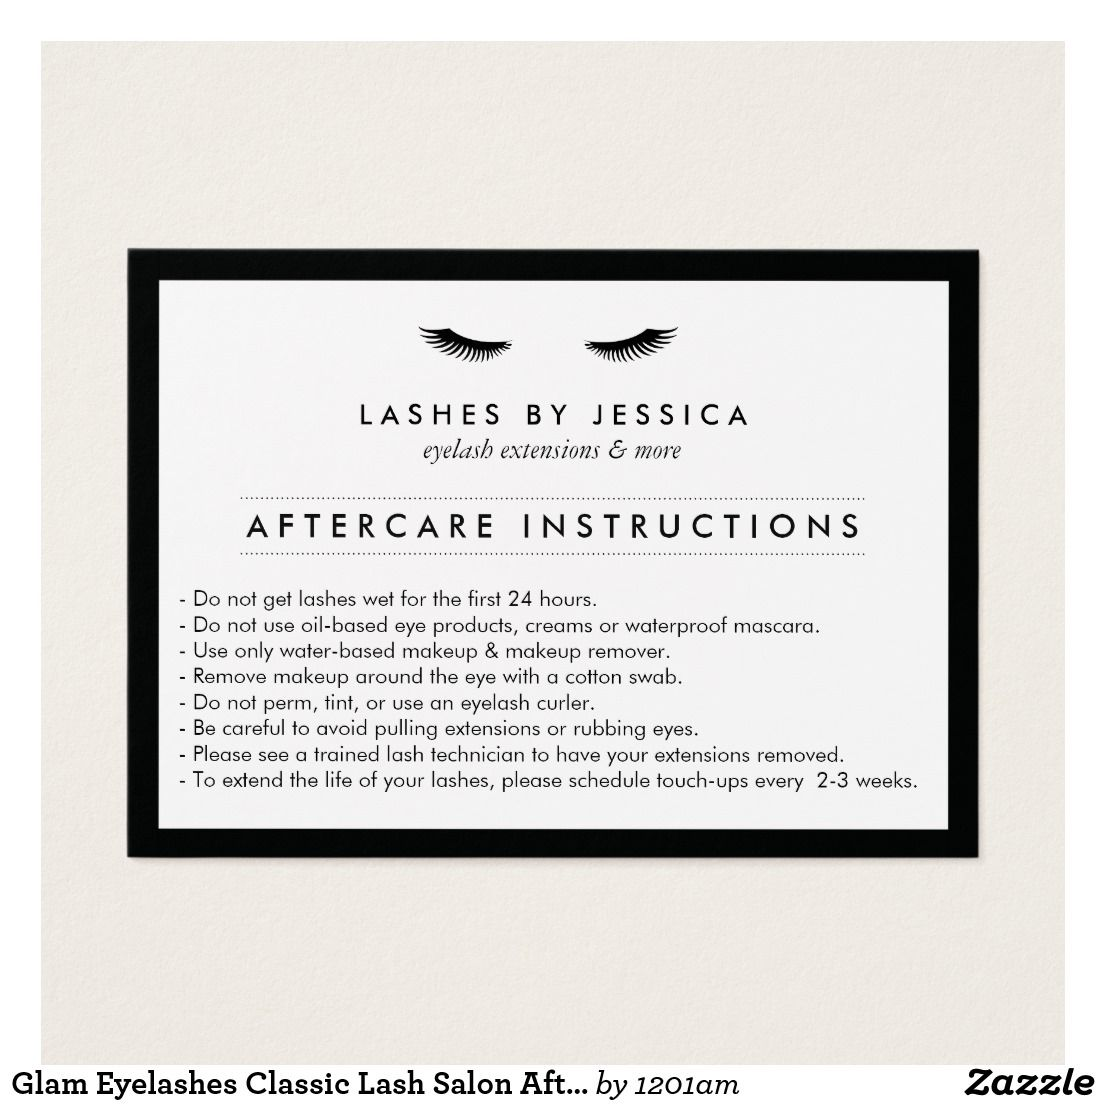 Glam Eyelashes Classic Lash Salon Aftercare Card - Personalize for ...